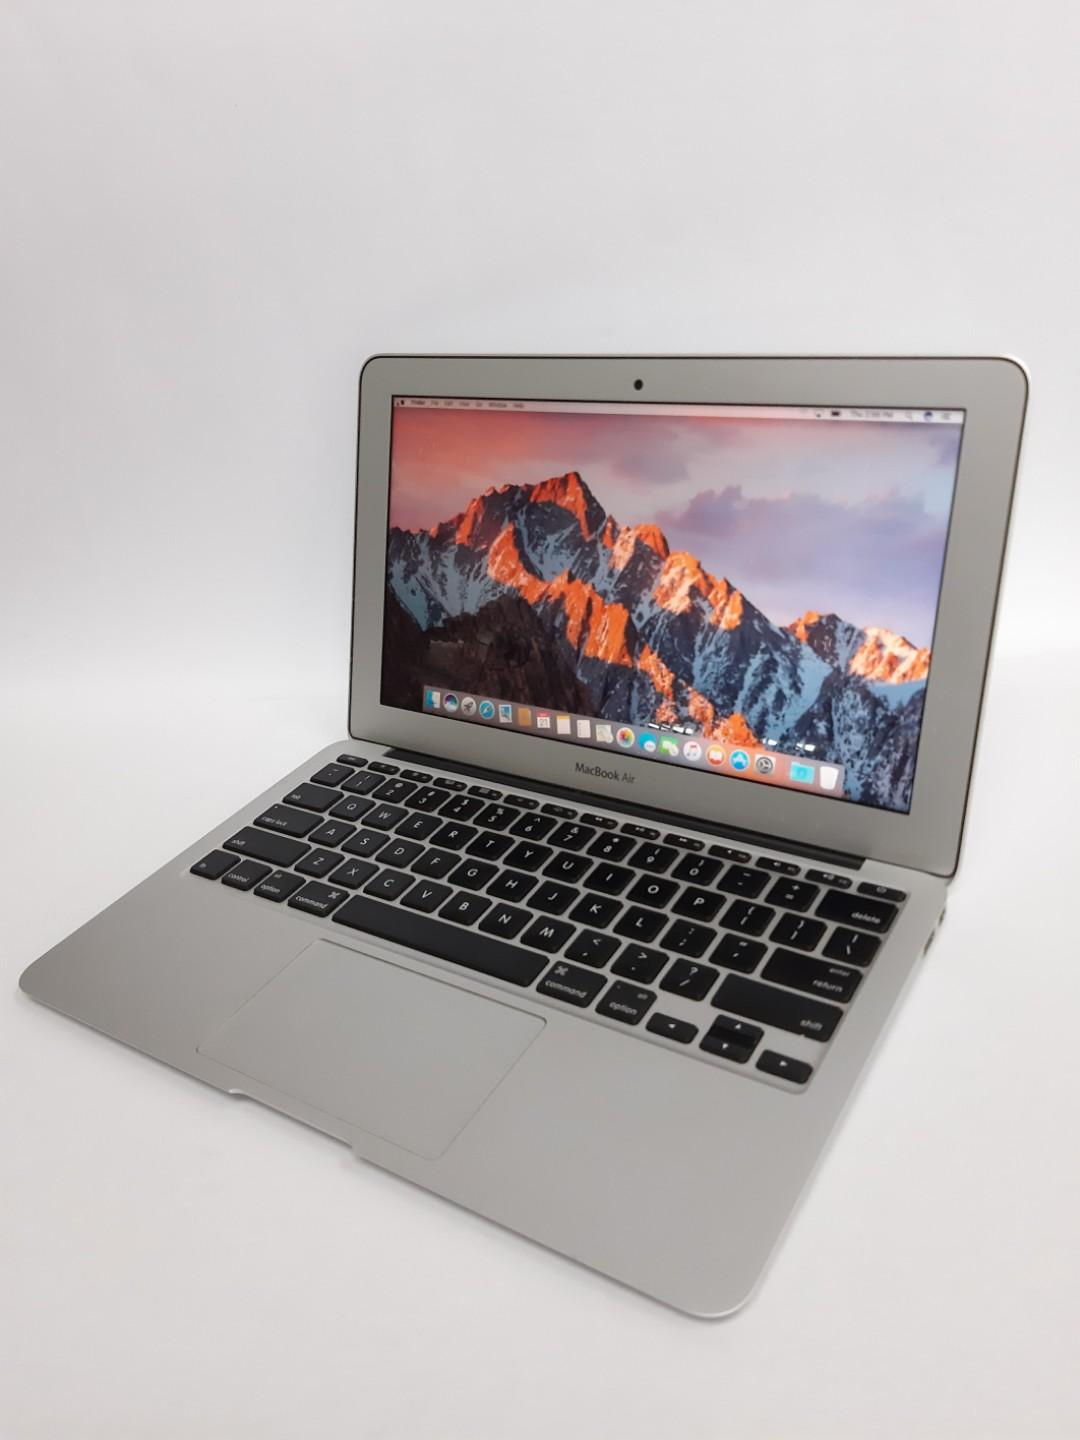 MacBook Air (11-inch 2013) photo